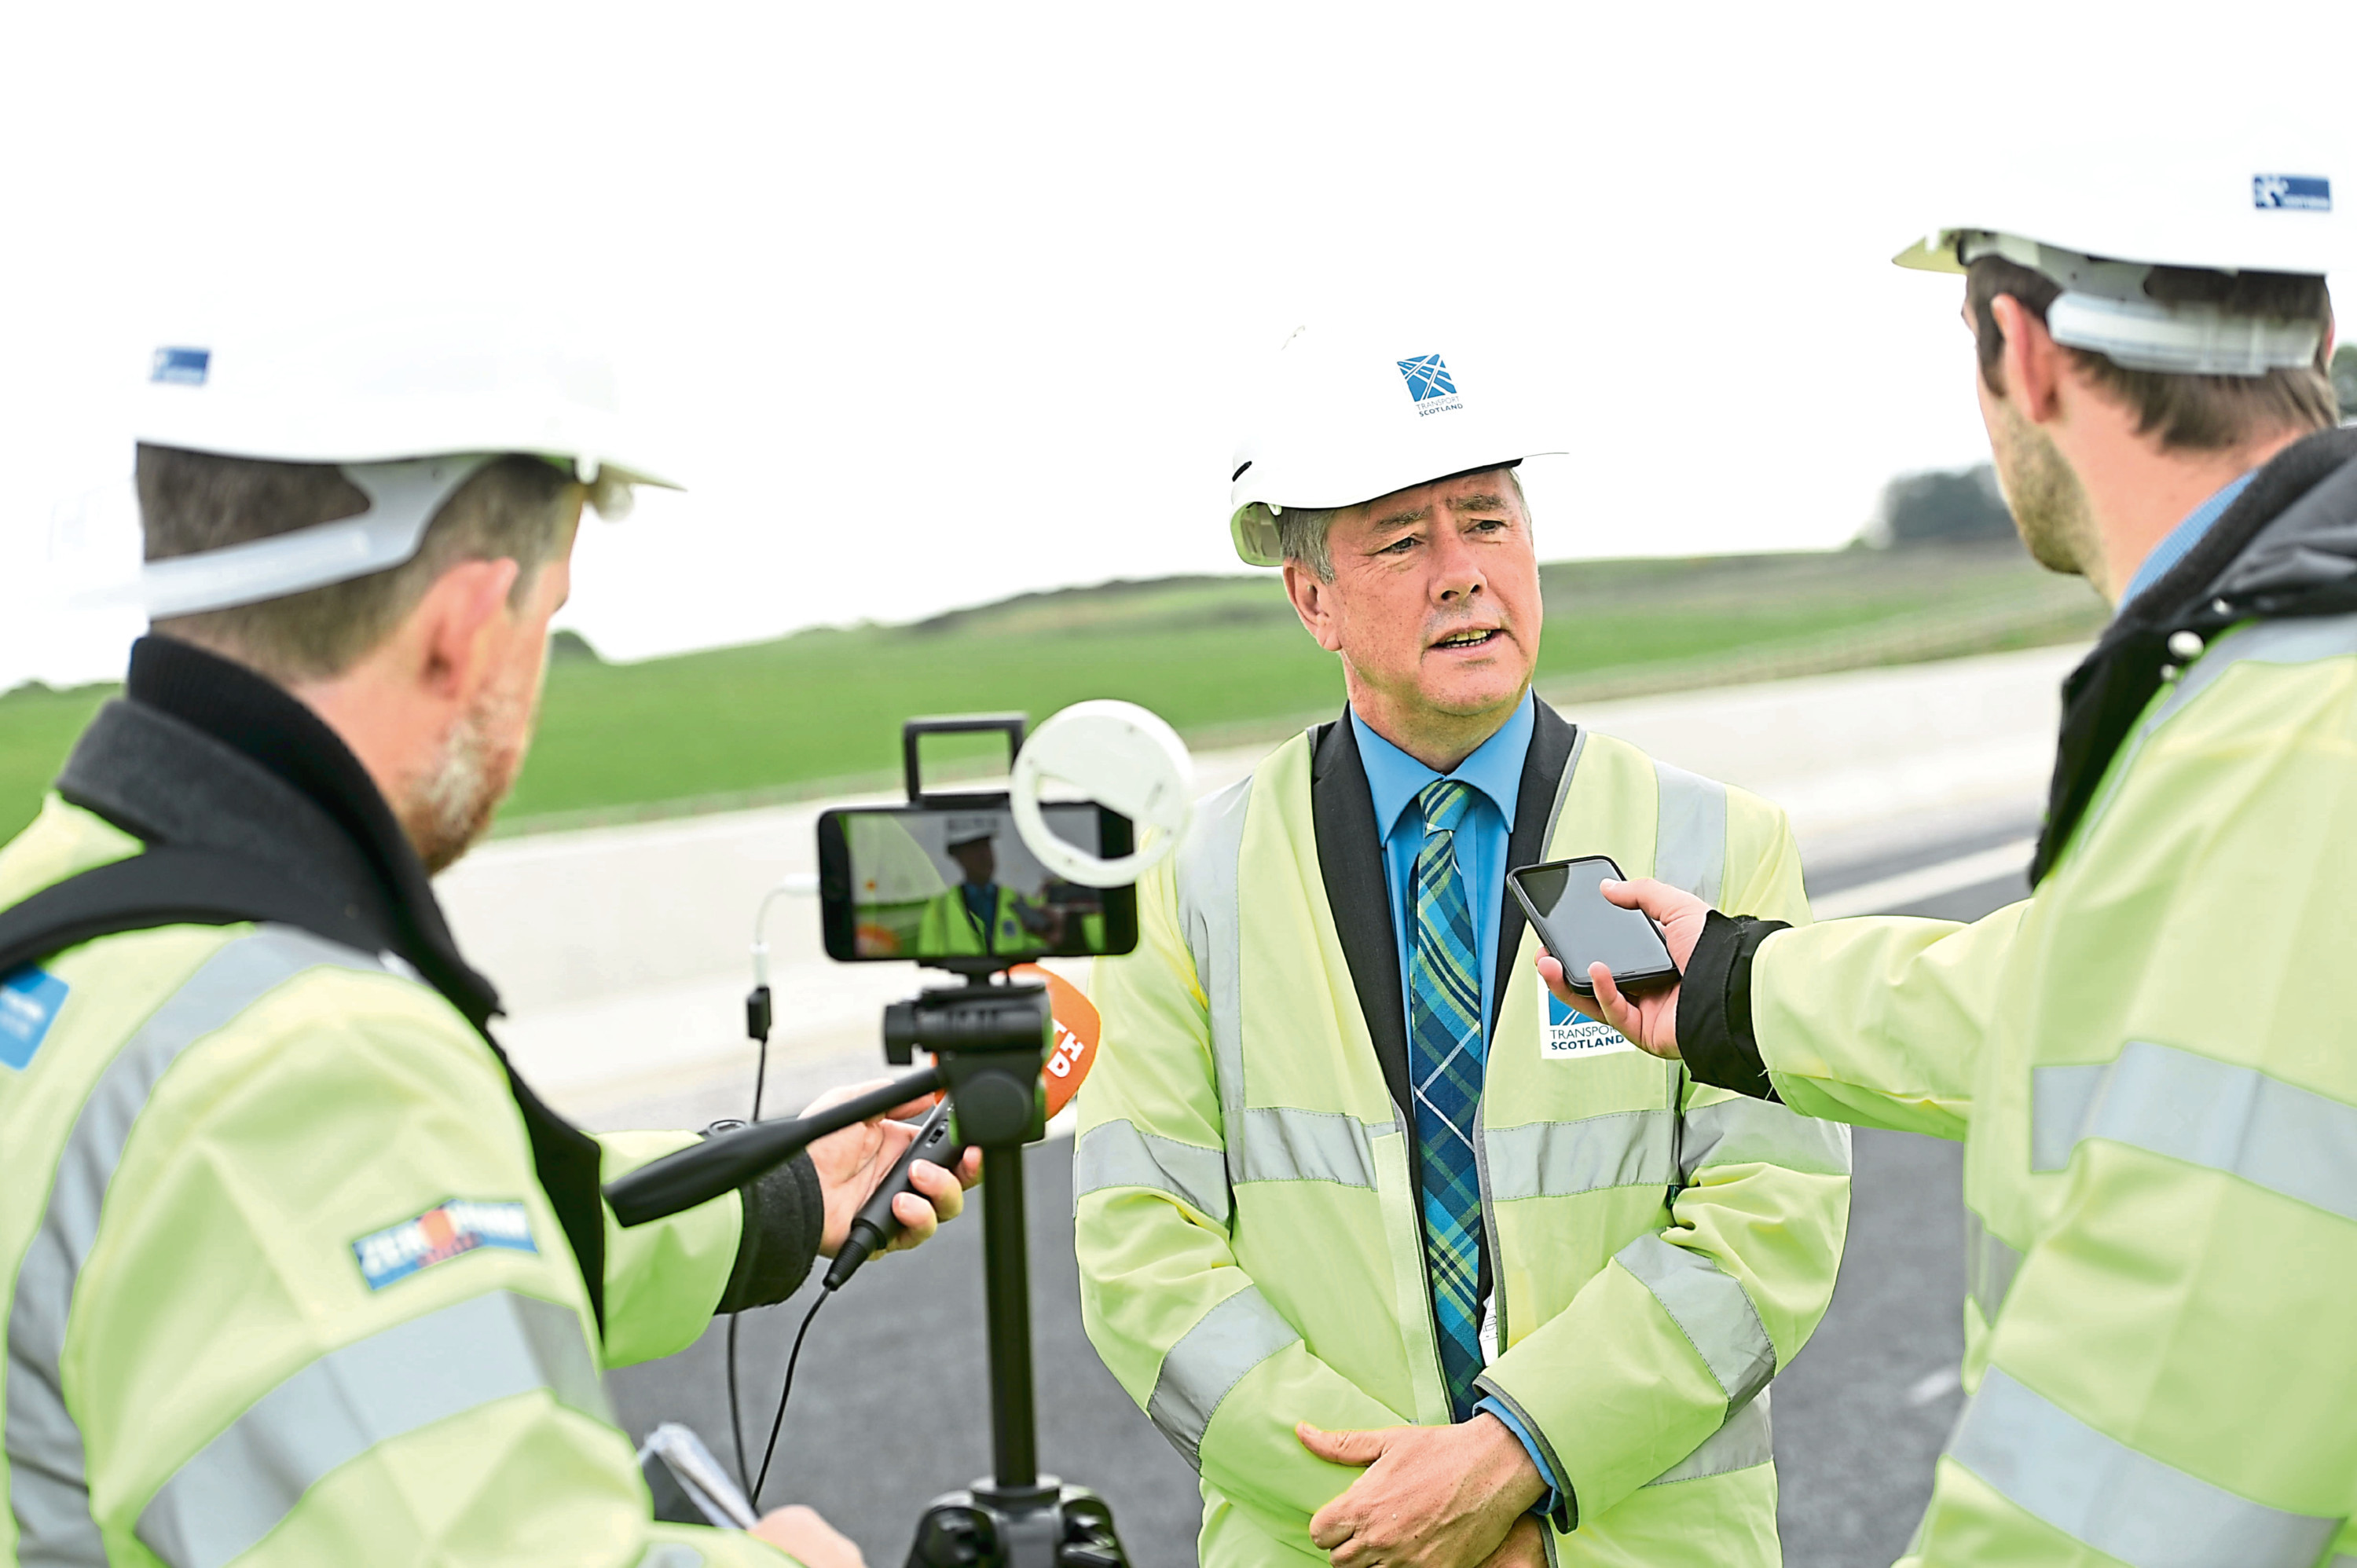 Keith Brown visited part of the AWPR today and confirmed a weekend of events will take place in September